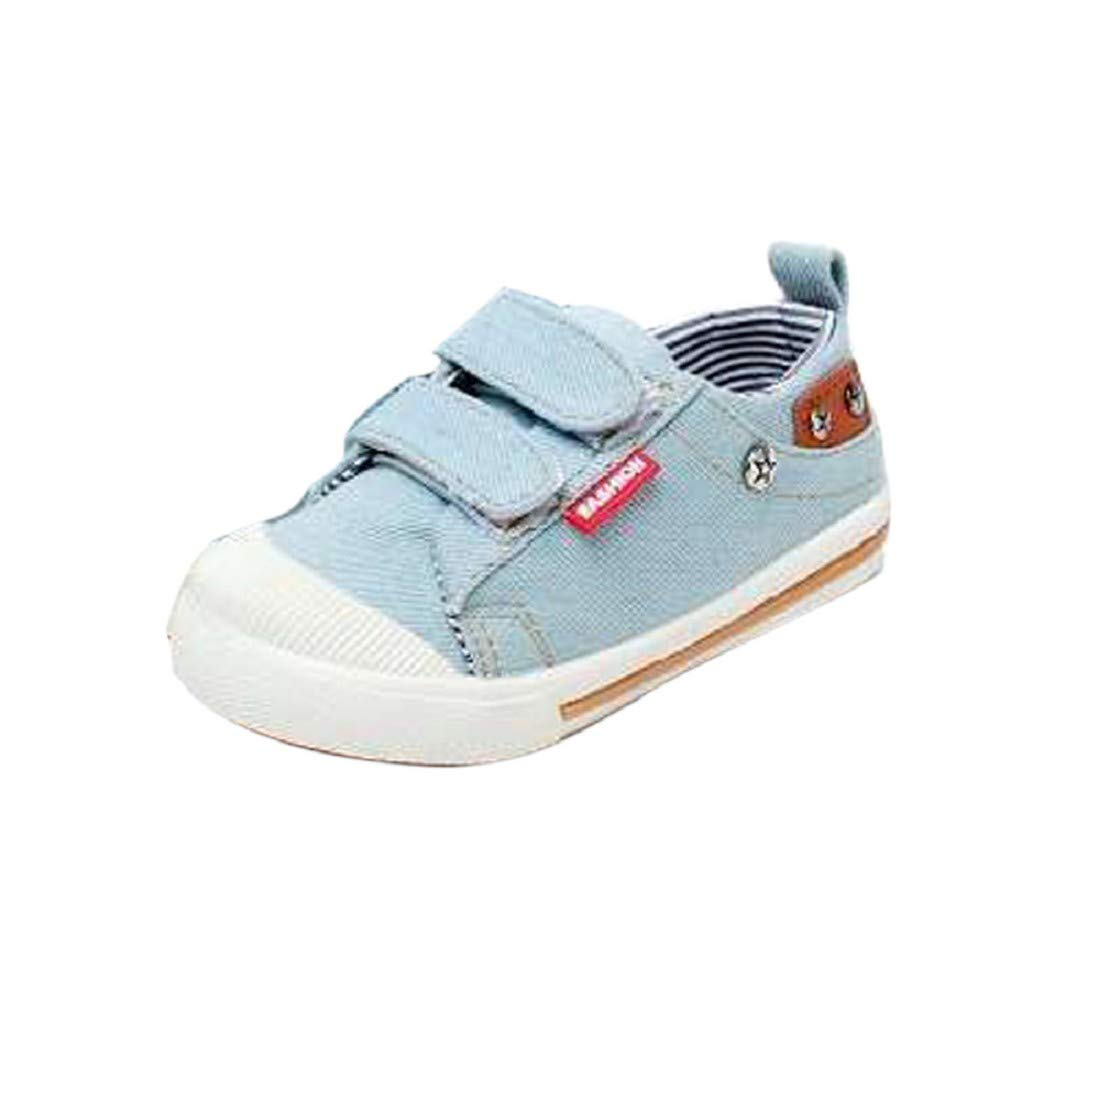 Newborn Canvas Shoes FAPIZI Baby Spring Autumn Baby Shoes Toddler Shoes Children Outdoor Flats